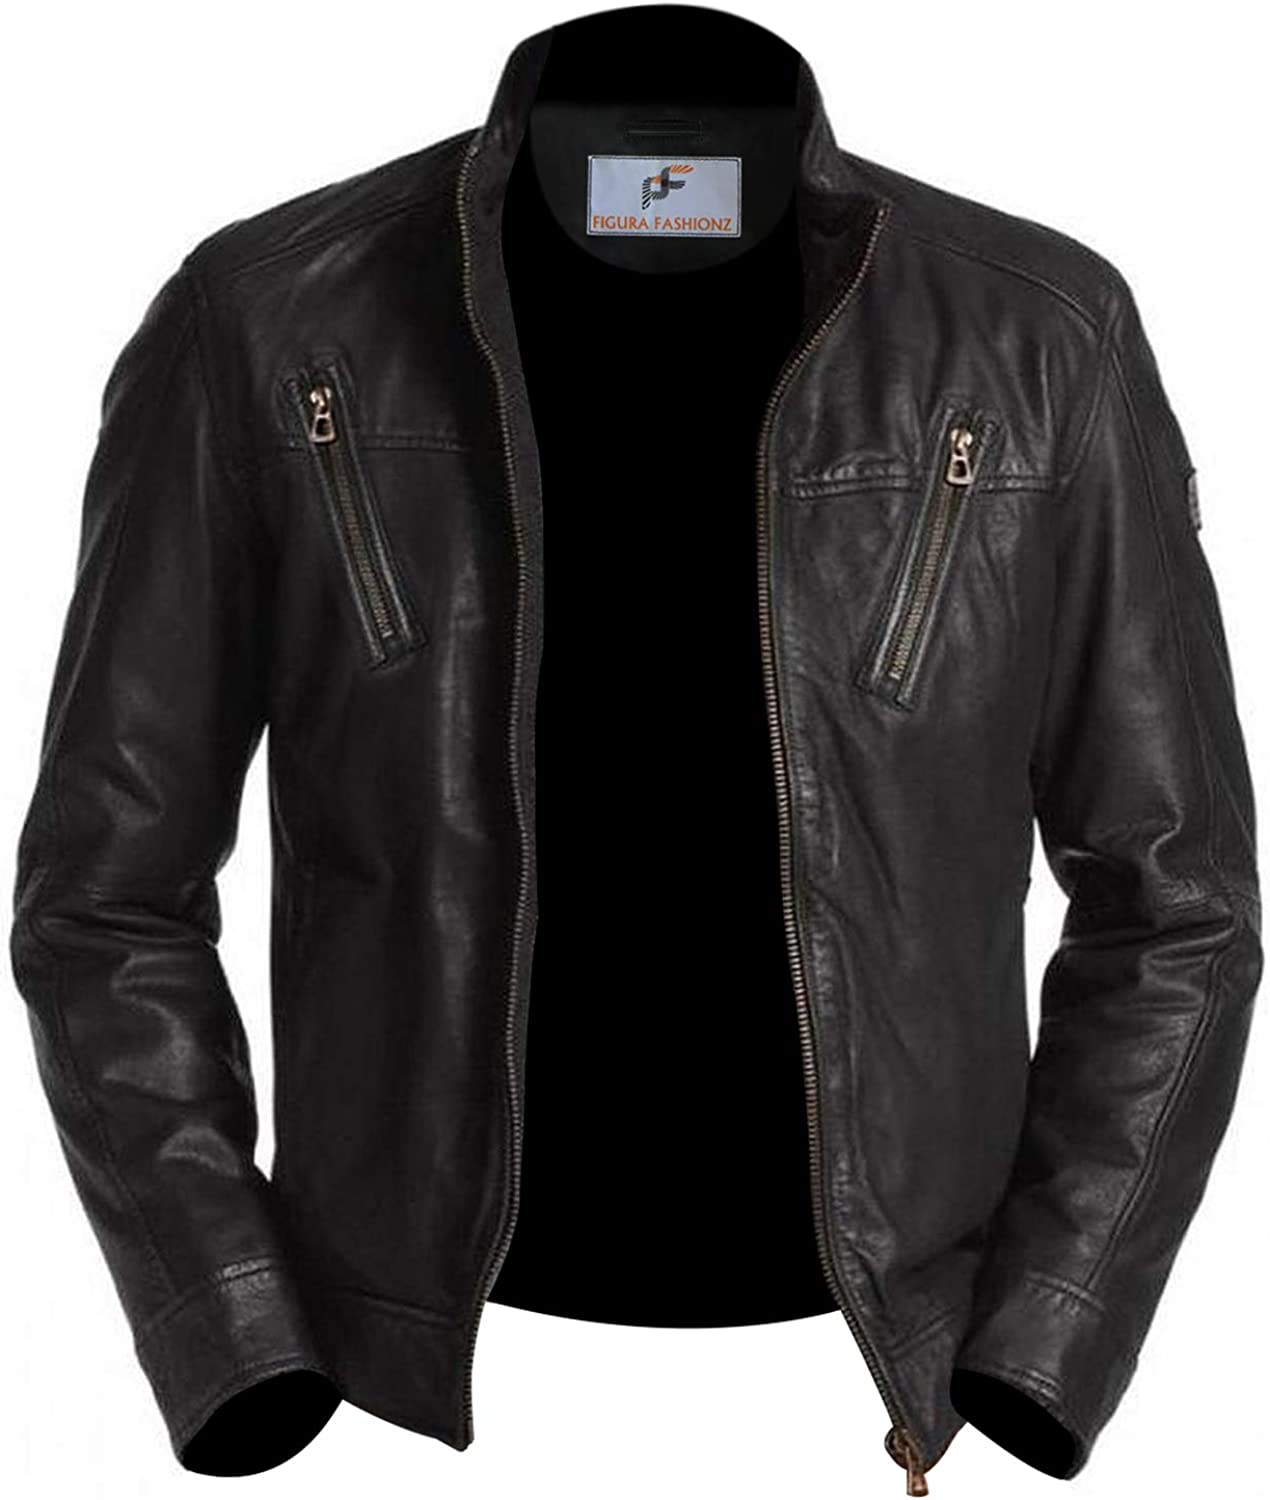 Figura Fashionz Fabulous Quilted Designer Black Lambskin Leather Biker Moto Jacket for Men